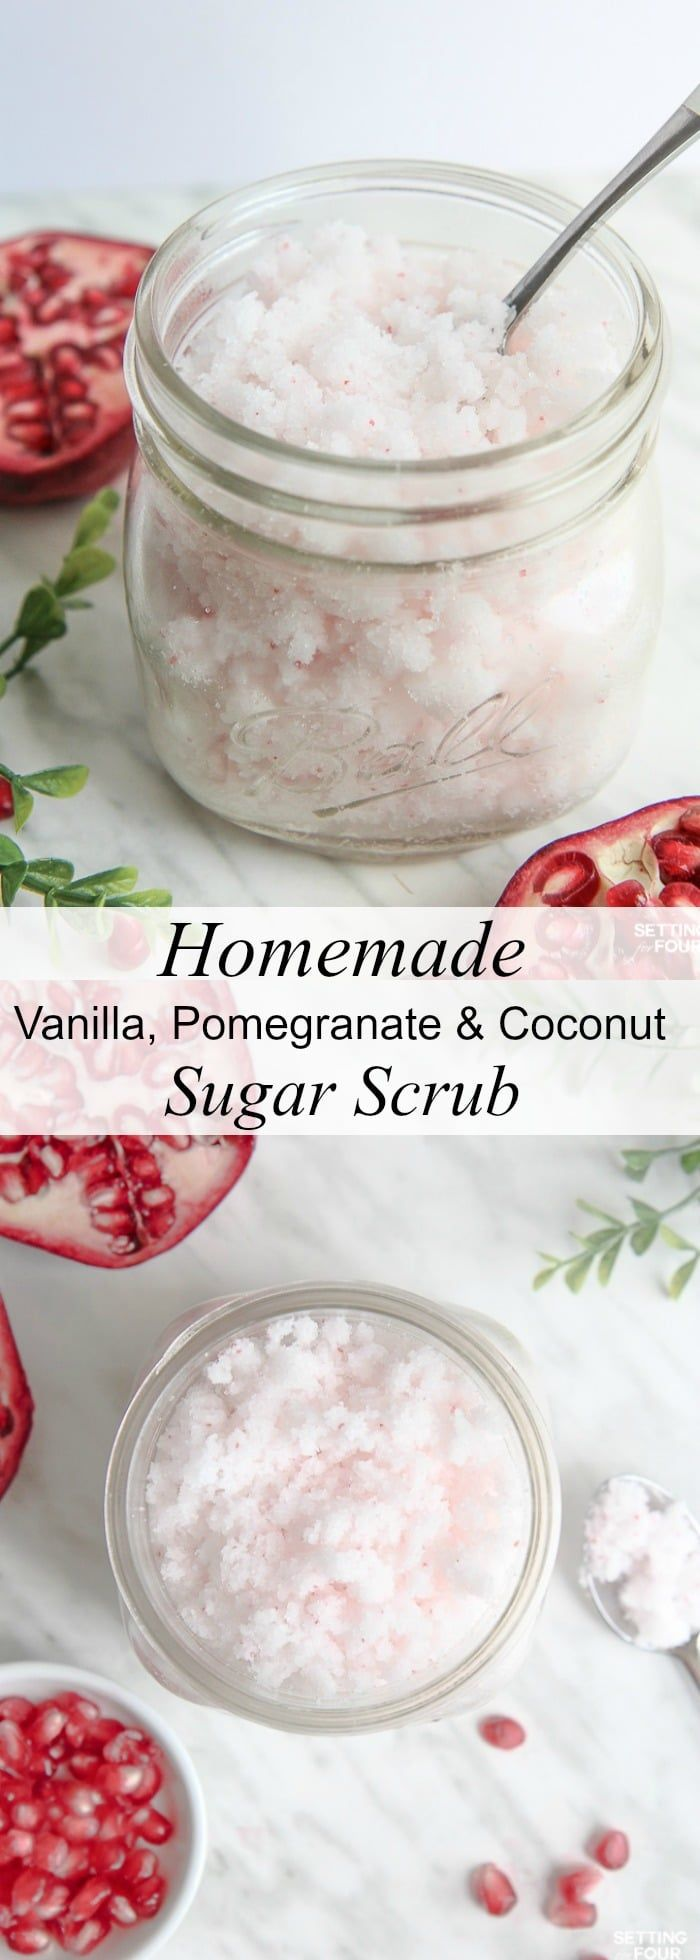 This DIY Vanilla, Pomegranate and Coconut Sugar Scrub Recipe is quick to make and smells amazing Great homemade gift idea! Rich, moisturizing coconut oil mixed with exfoliating sugar not only feels fabulous but gets rid of flaky skin in a jiffy! Click to see the ingredients and directions to make this easy DIY sugar scrub! #diy #sugarscrub